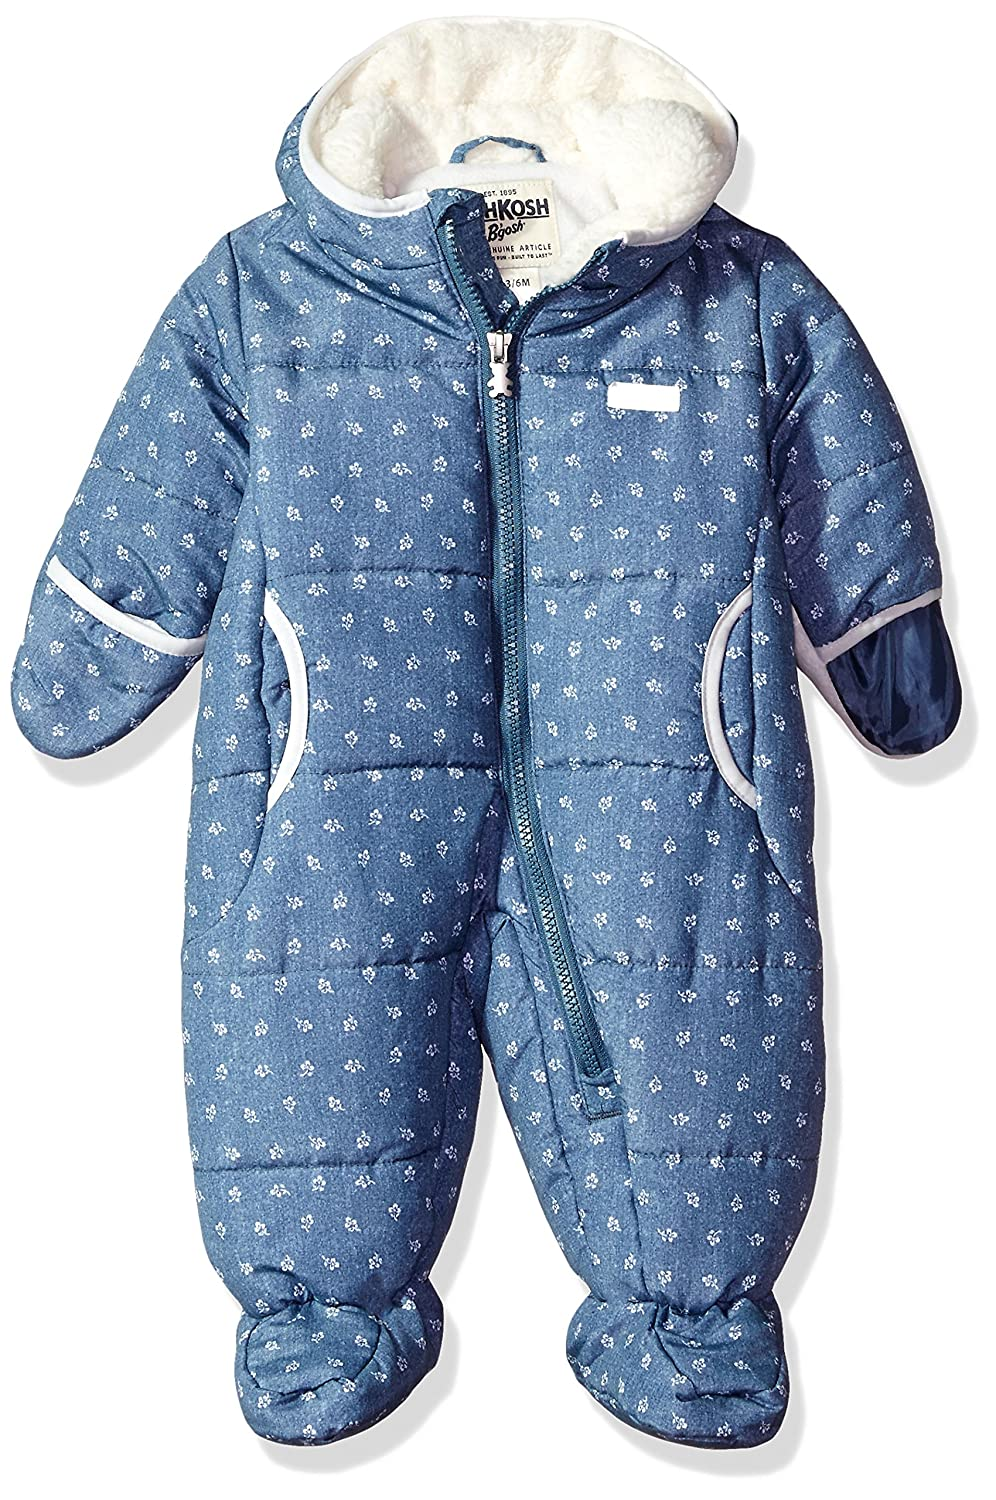 Osh Kosh Baby Boys Girls Pram Suit with Cozy Lining Chambray Flowers 6-9 Months B217H35